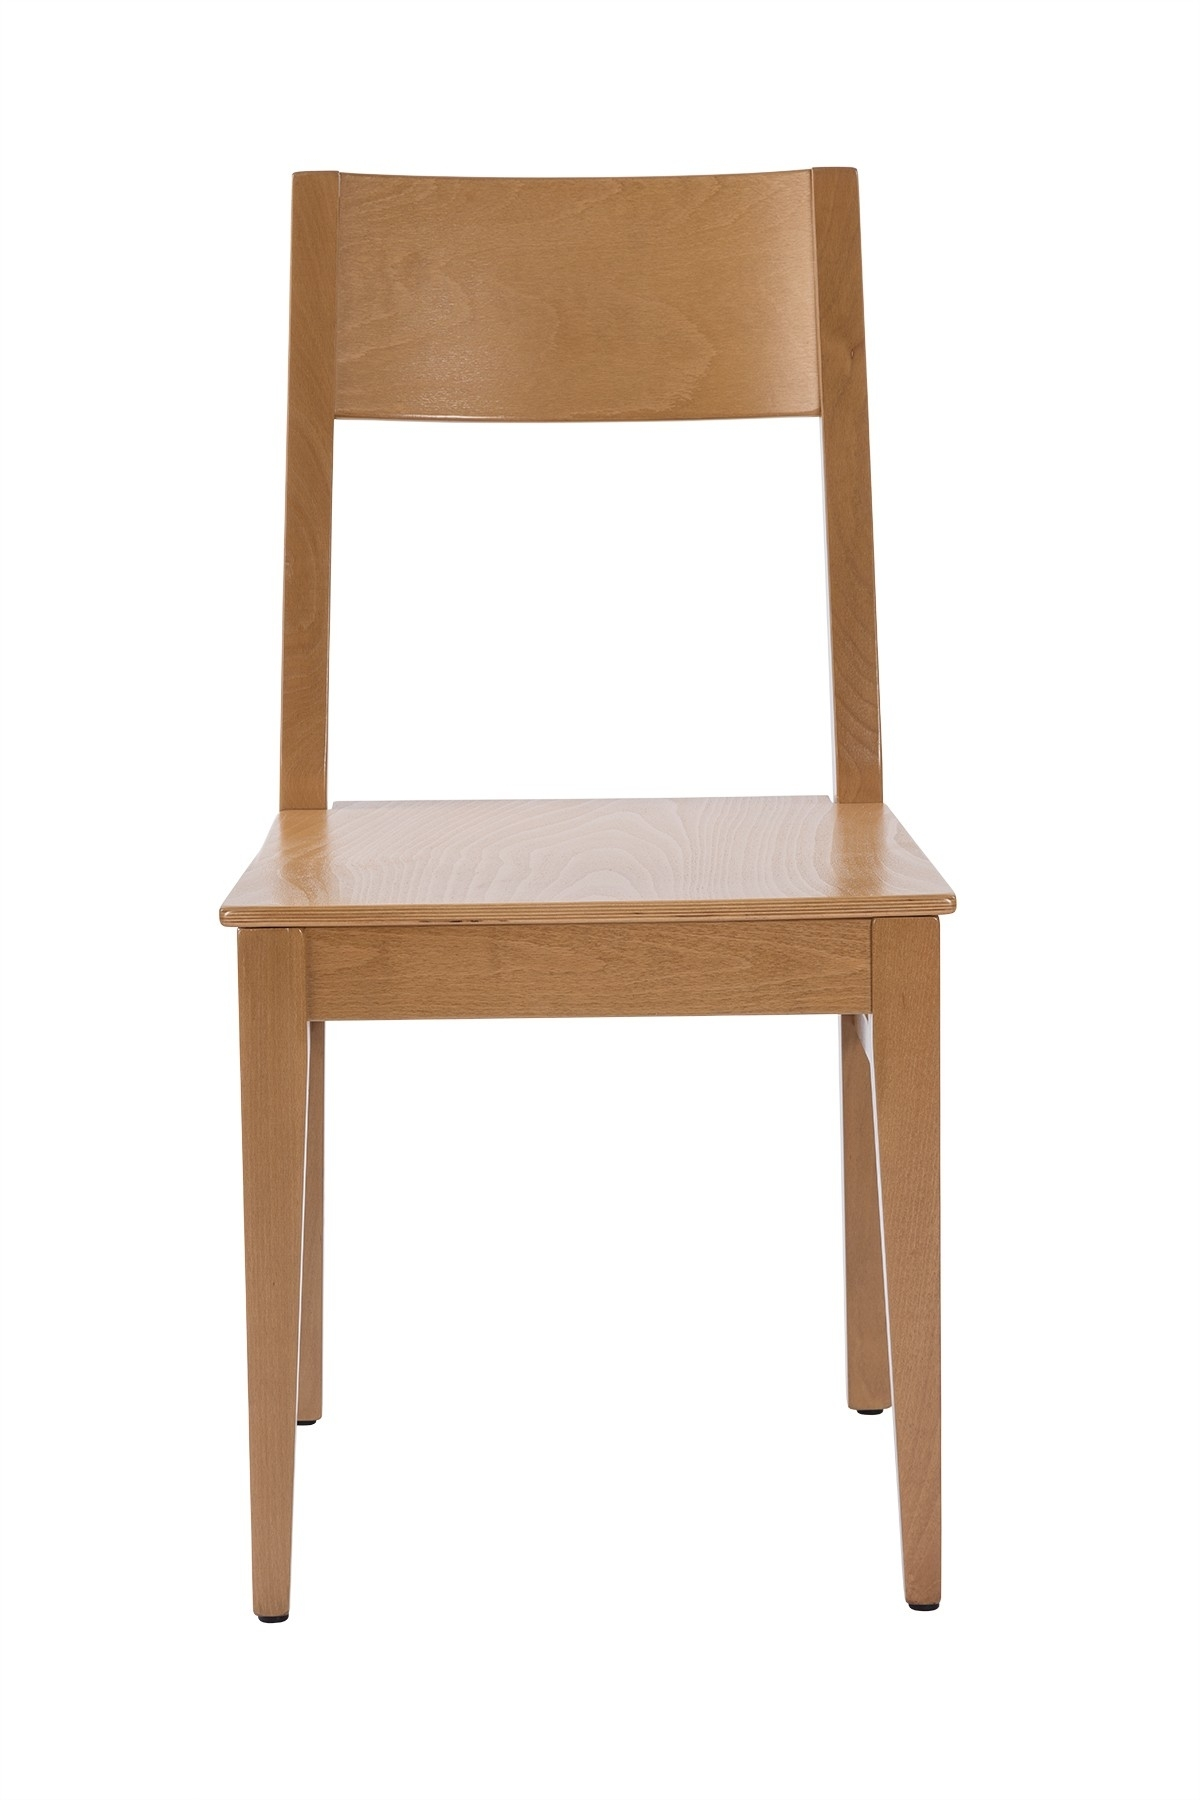 Most Recent Orion Dining Chair Oak With Veneer Seat – Orion – Chairs Pertaining To Orion Side Chairs (#8 of 20)